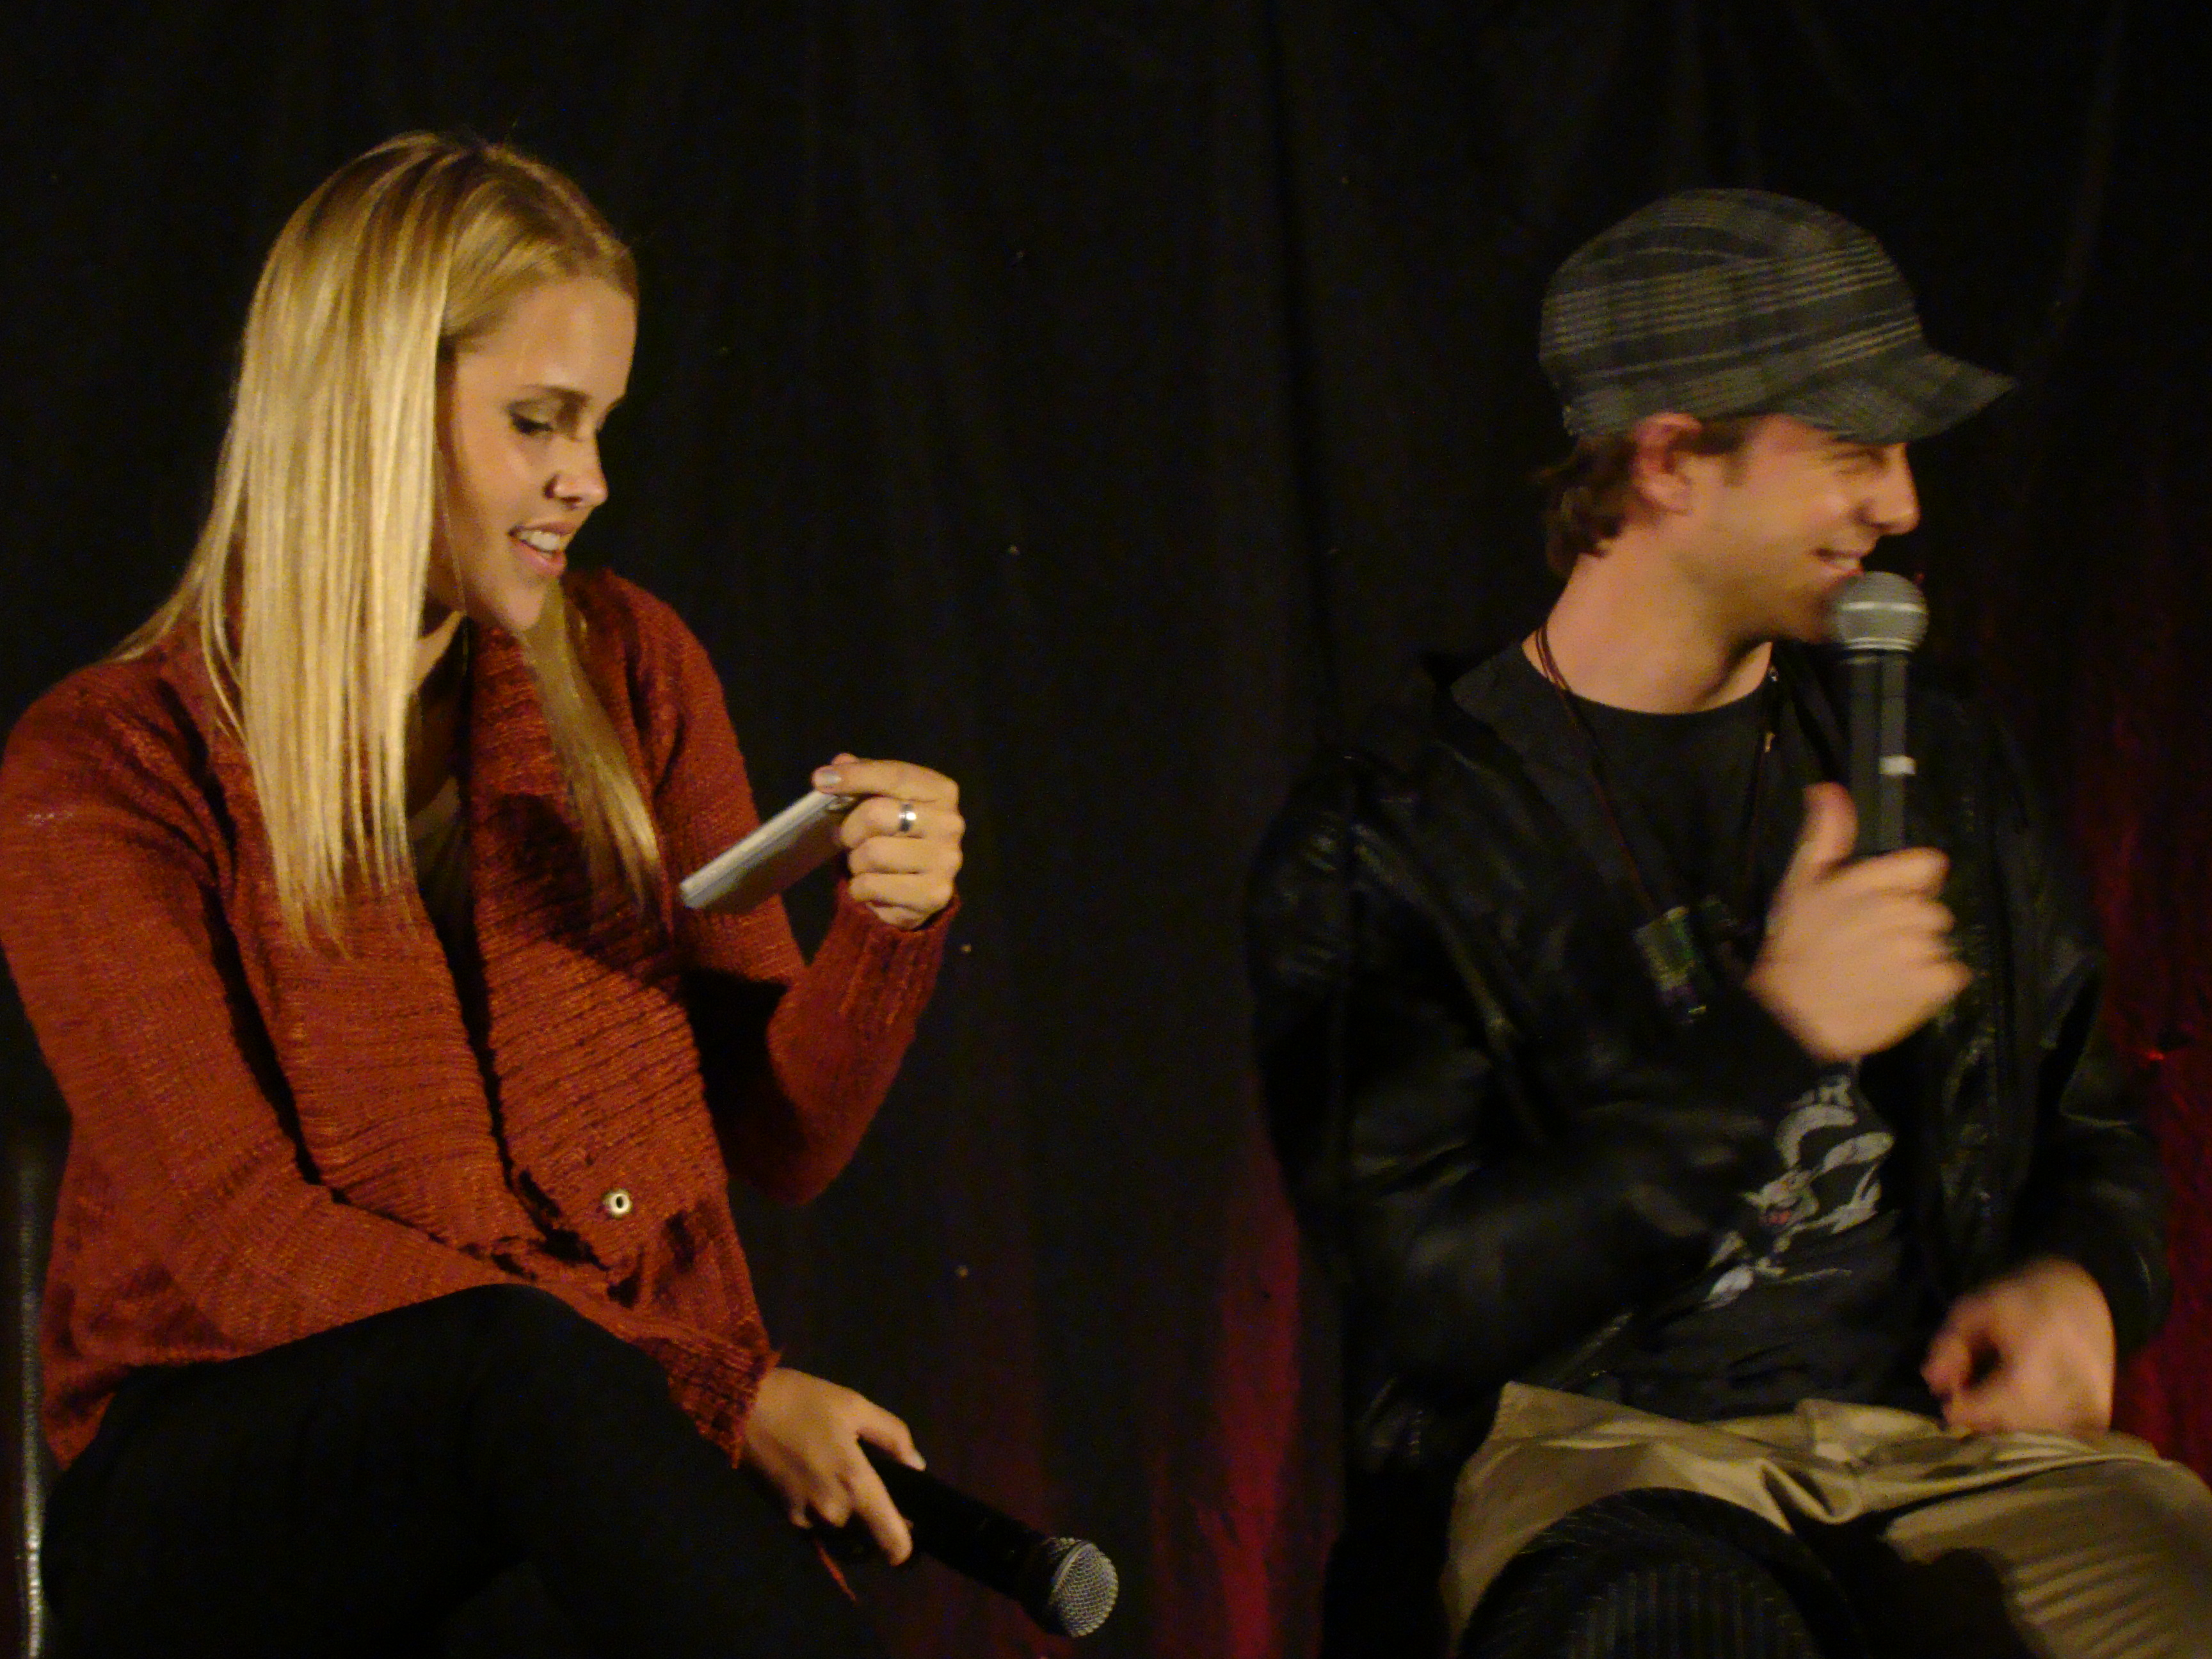 http://upload.wikimedia.org/wikipedia/commons/2/2e/Claire_Holt_%26_Nate_Buzolic_(7446299824).jpg